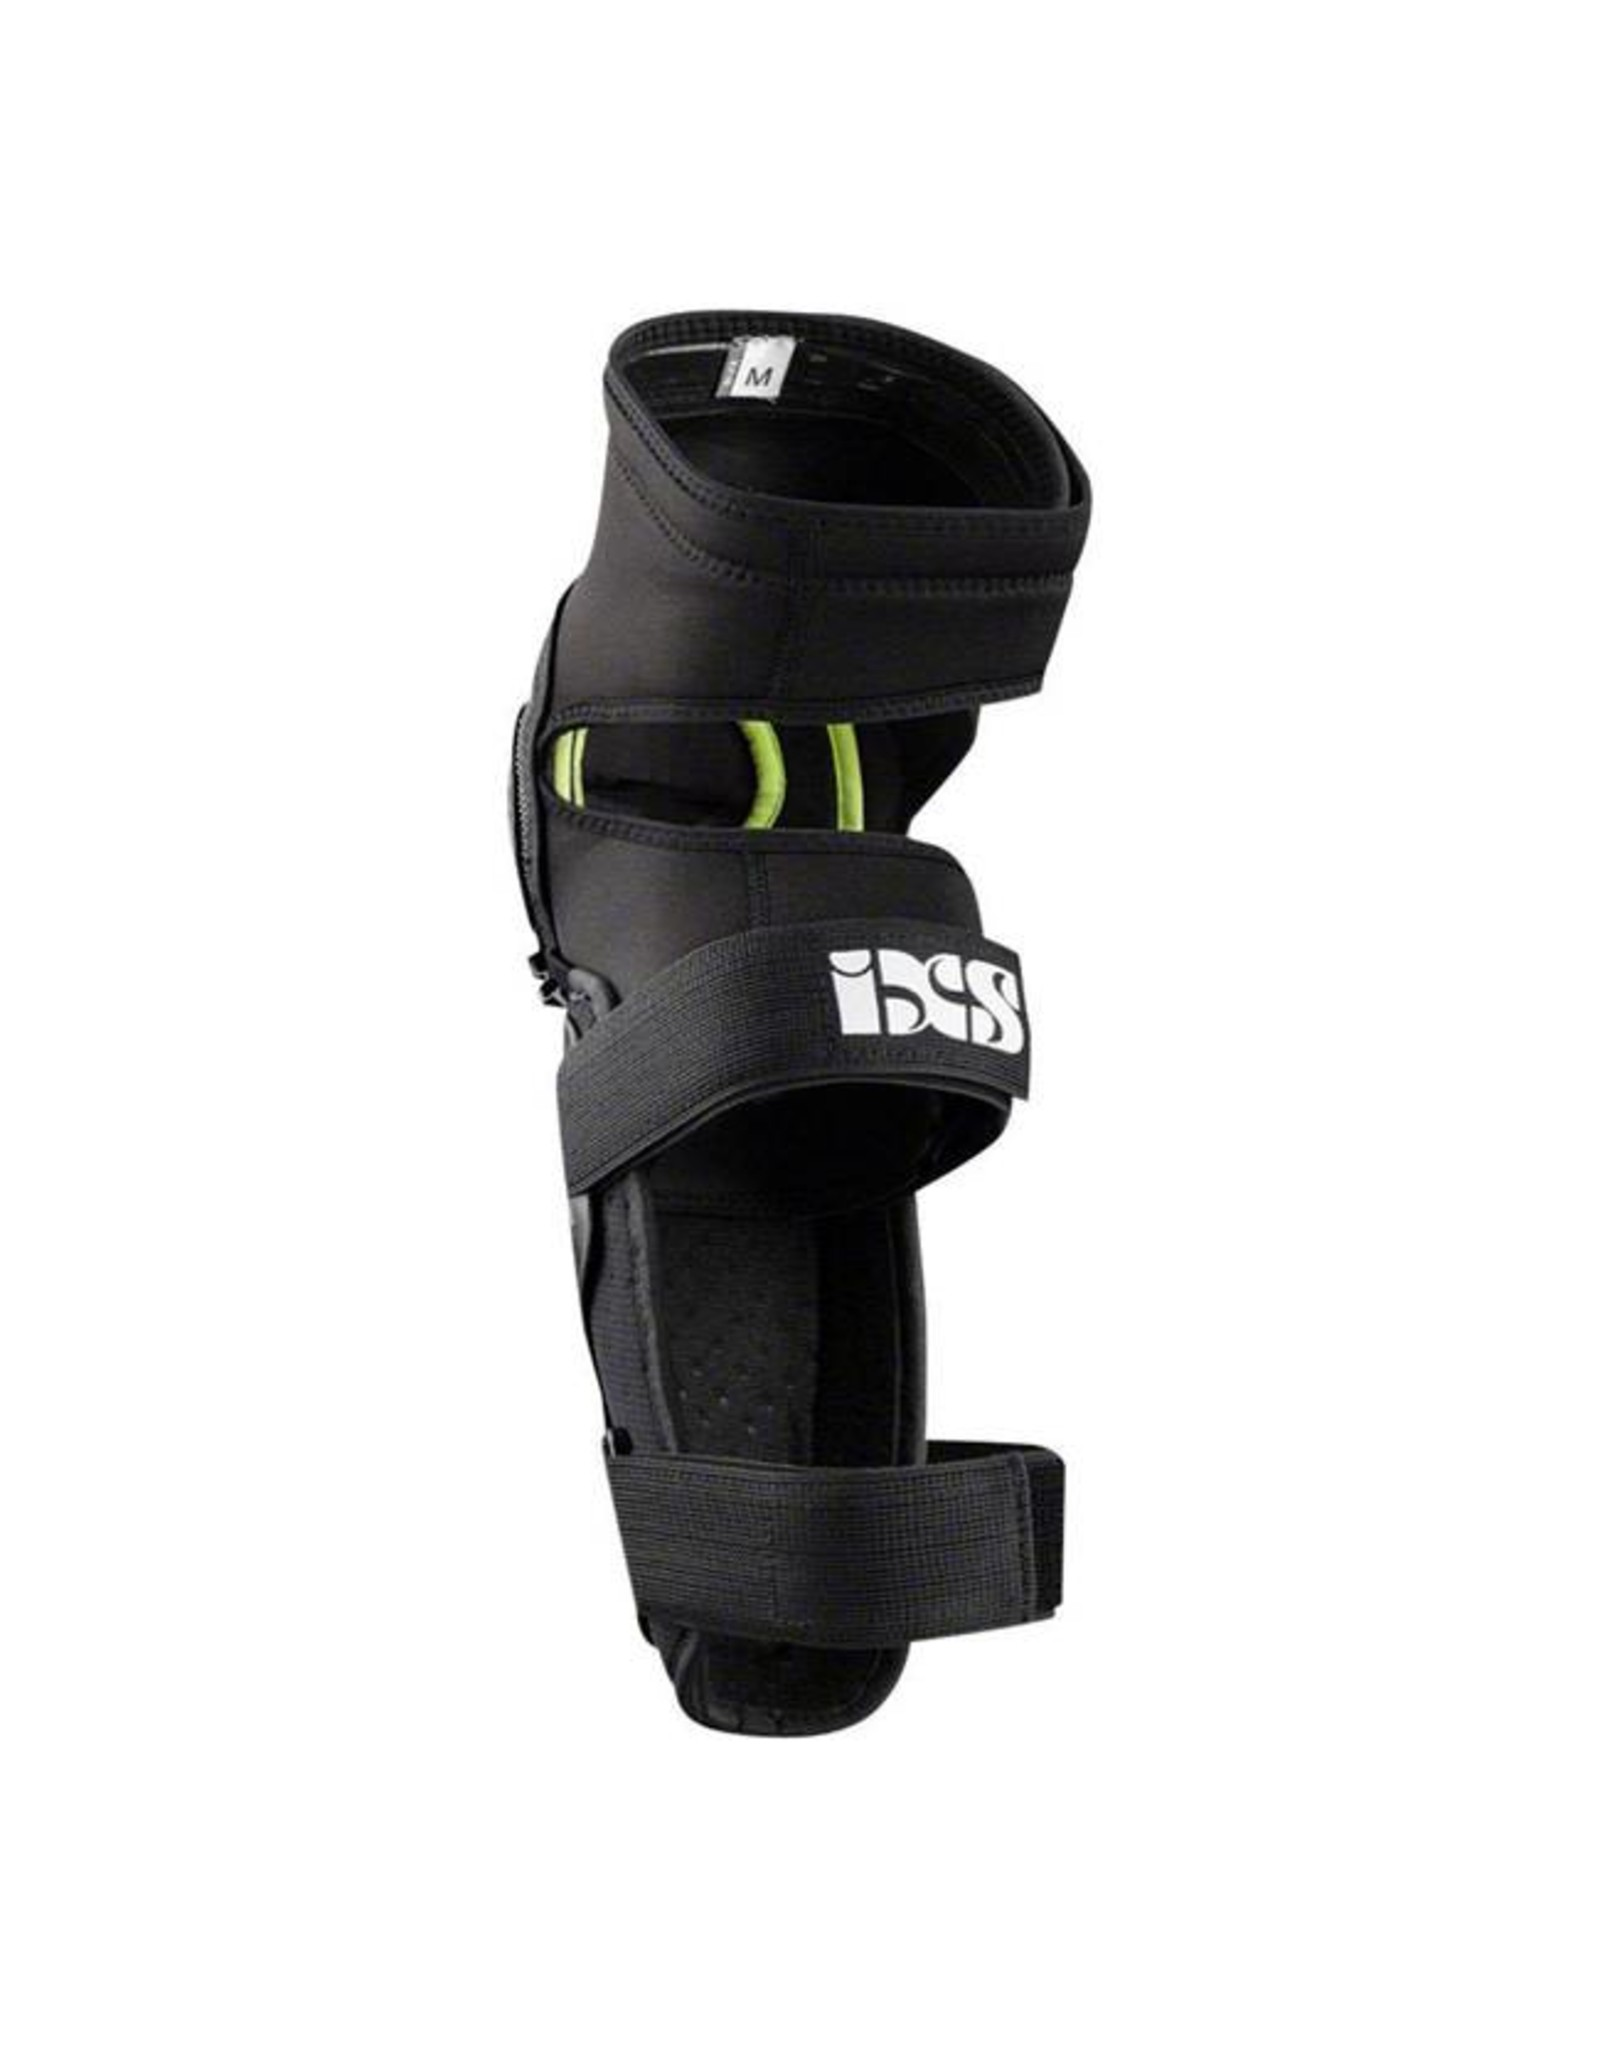 IXS iXS Mallet Knee/Shin Guard: Black, SM